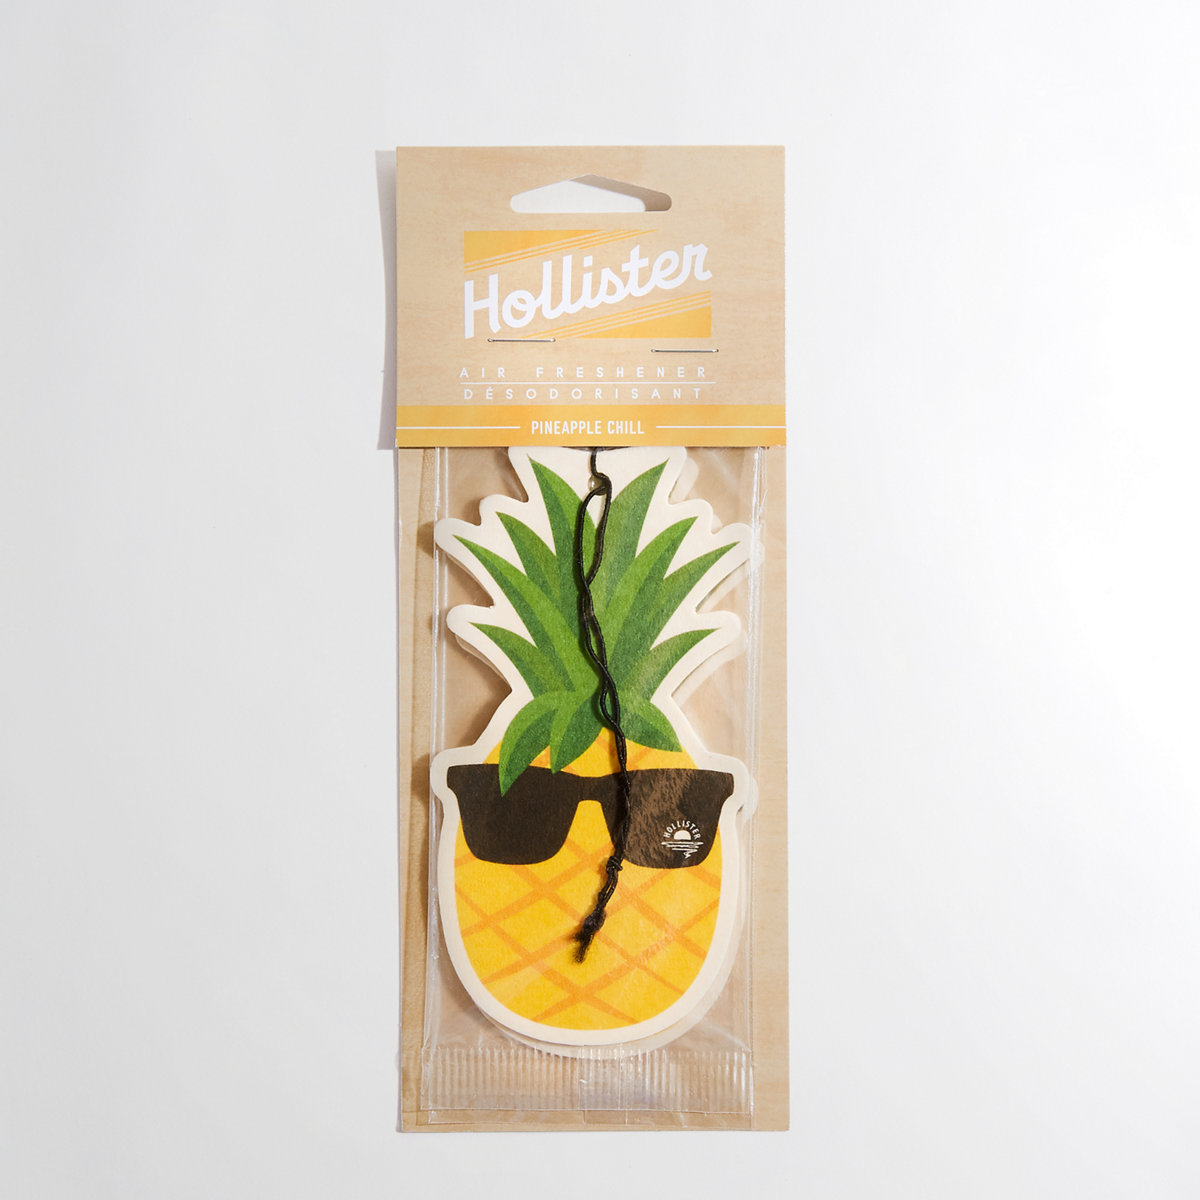 Pineapple Chill Air Freshener